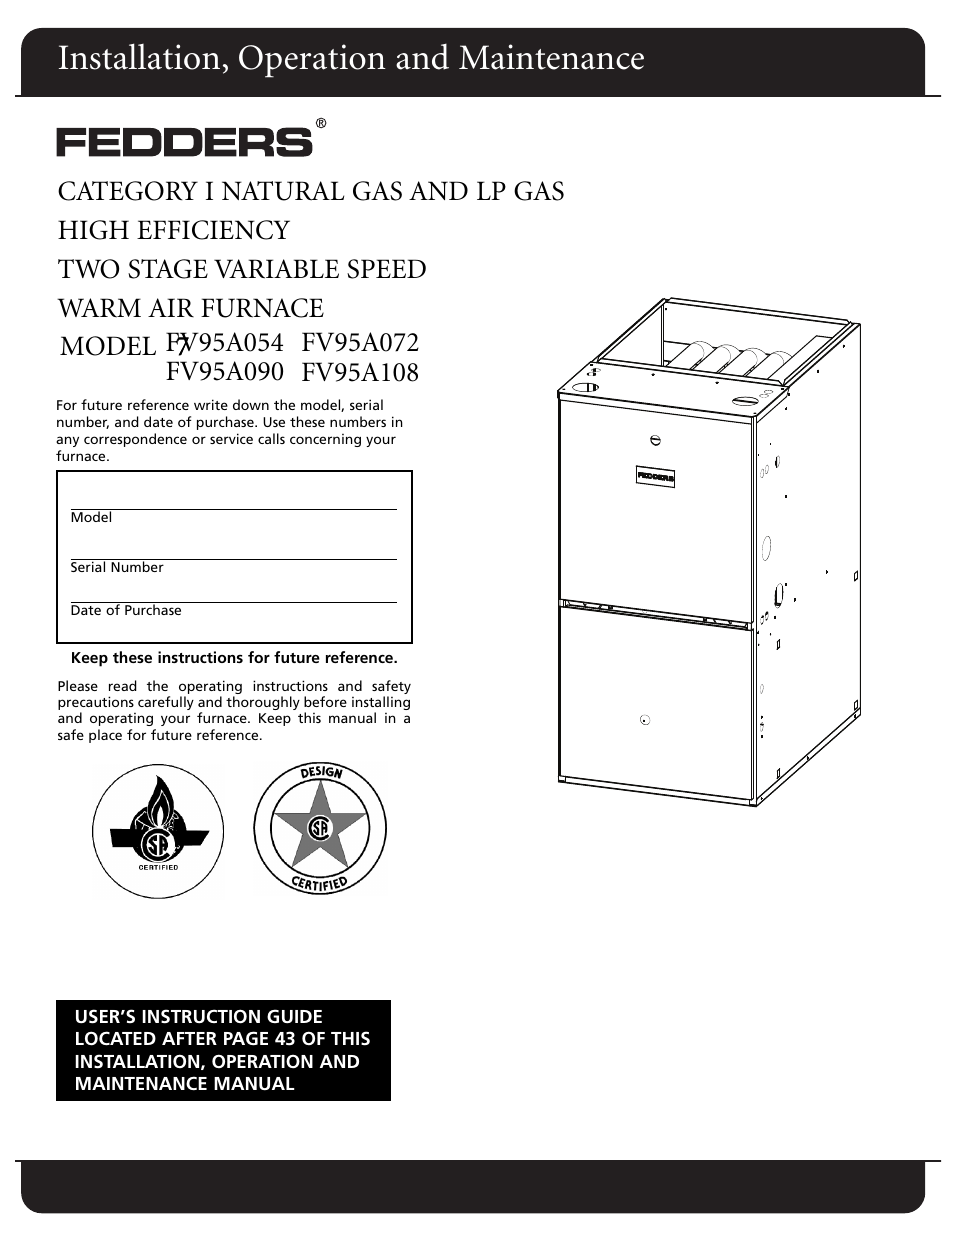 Fedders Furnace Model Numbers Free Download Wiring Diagram Fv95a090 User Manual 50 Pages Also For Fv95a072 Gas At